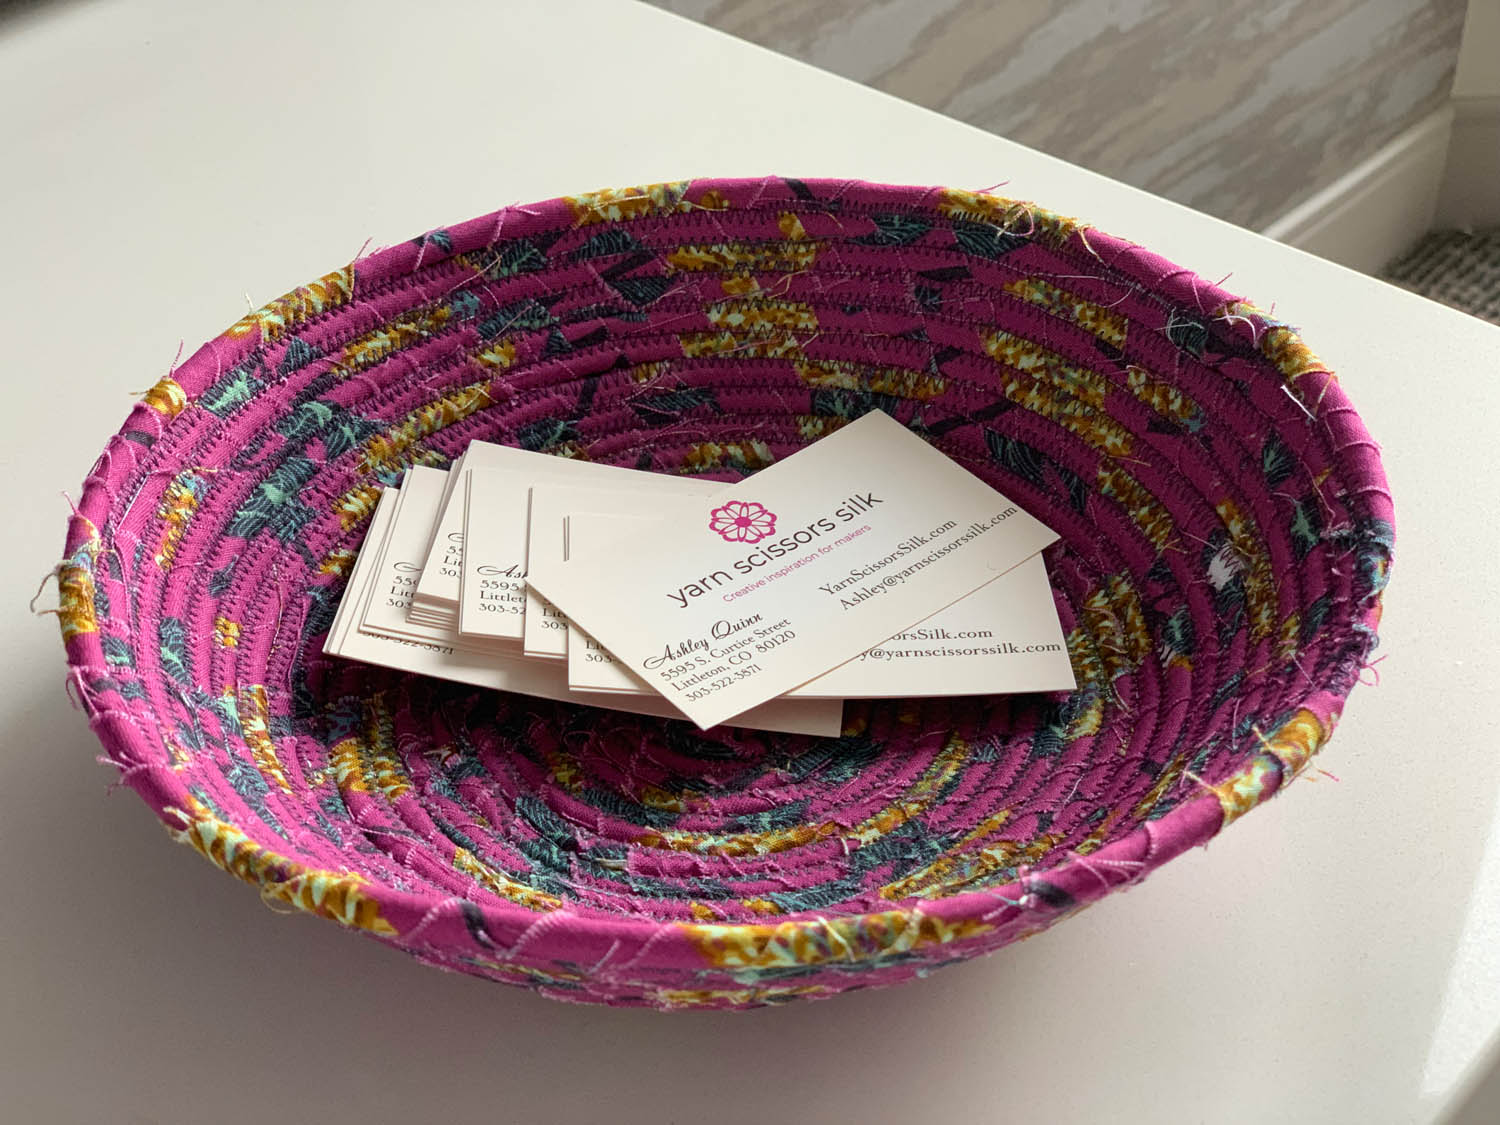 completed fabric rope bowl made at Craftcation